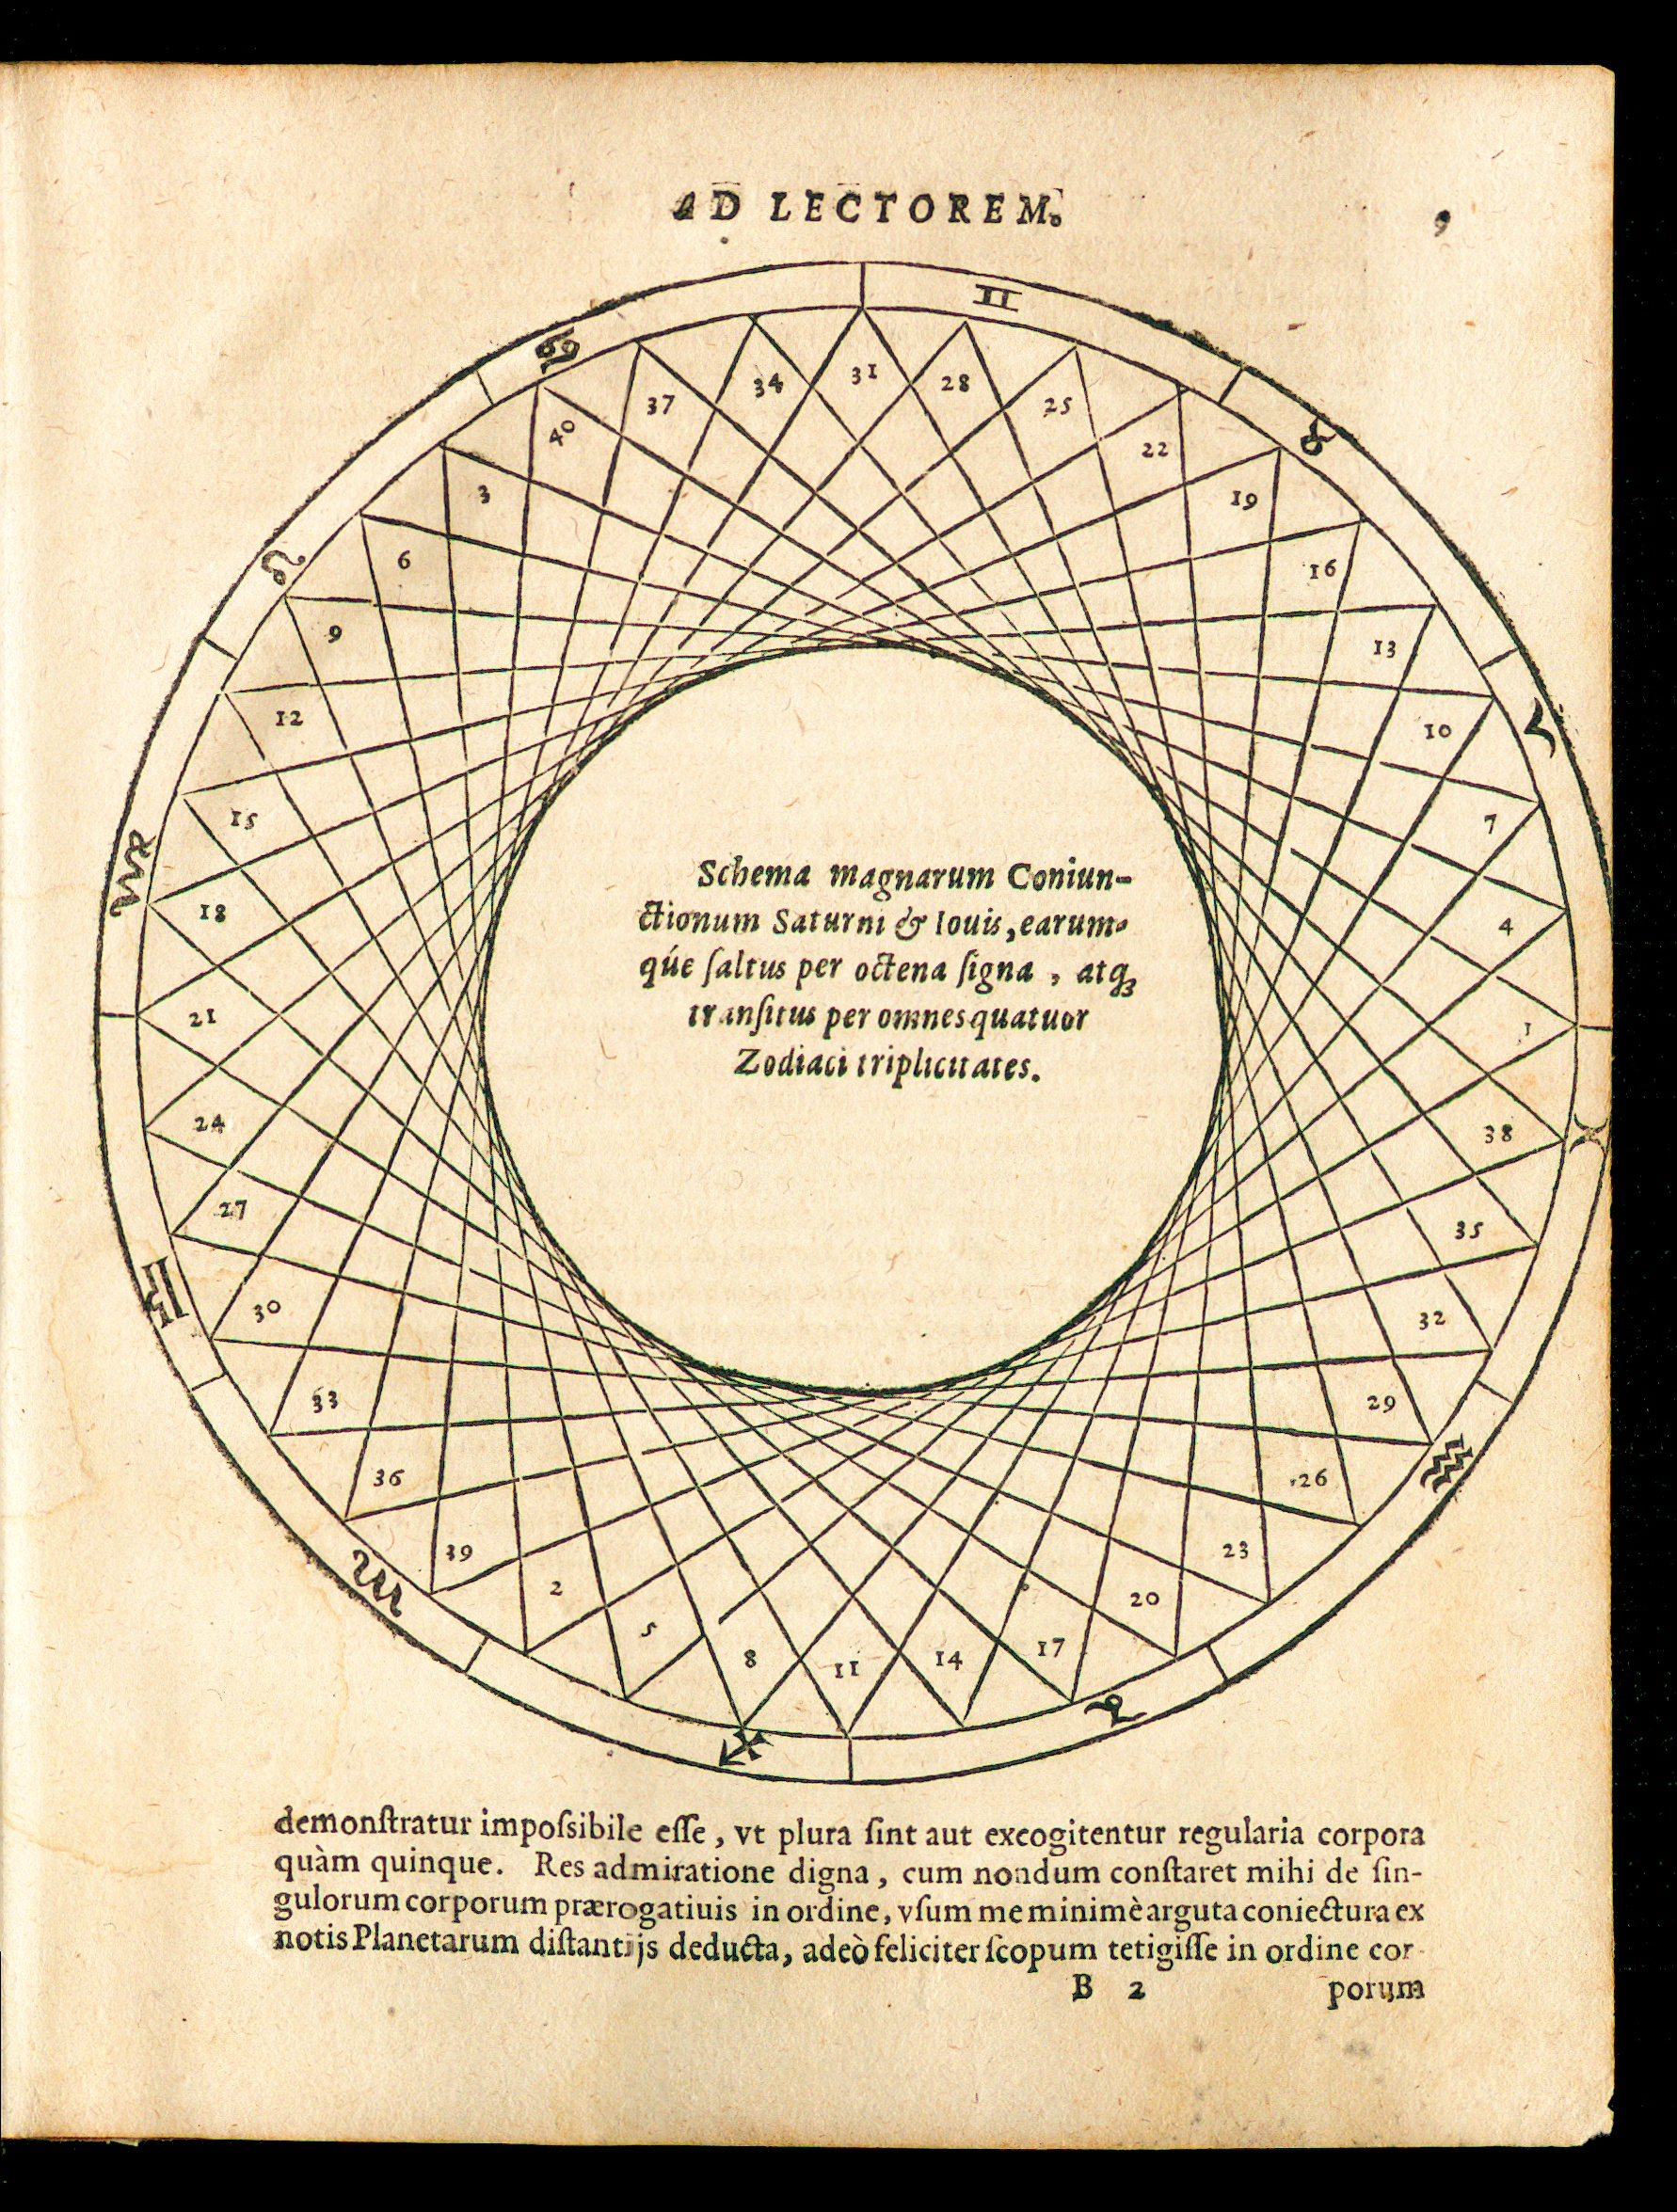 Illustration from Johannes Kepler, Mysterium Cosmographicu (Tübingen: Georg Gruppenbach, 1596), showing how successive conjunctions of Jupiter and Saturn move through constellations of the zodiac, represented by symbols in the outer circle